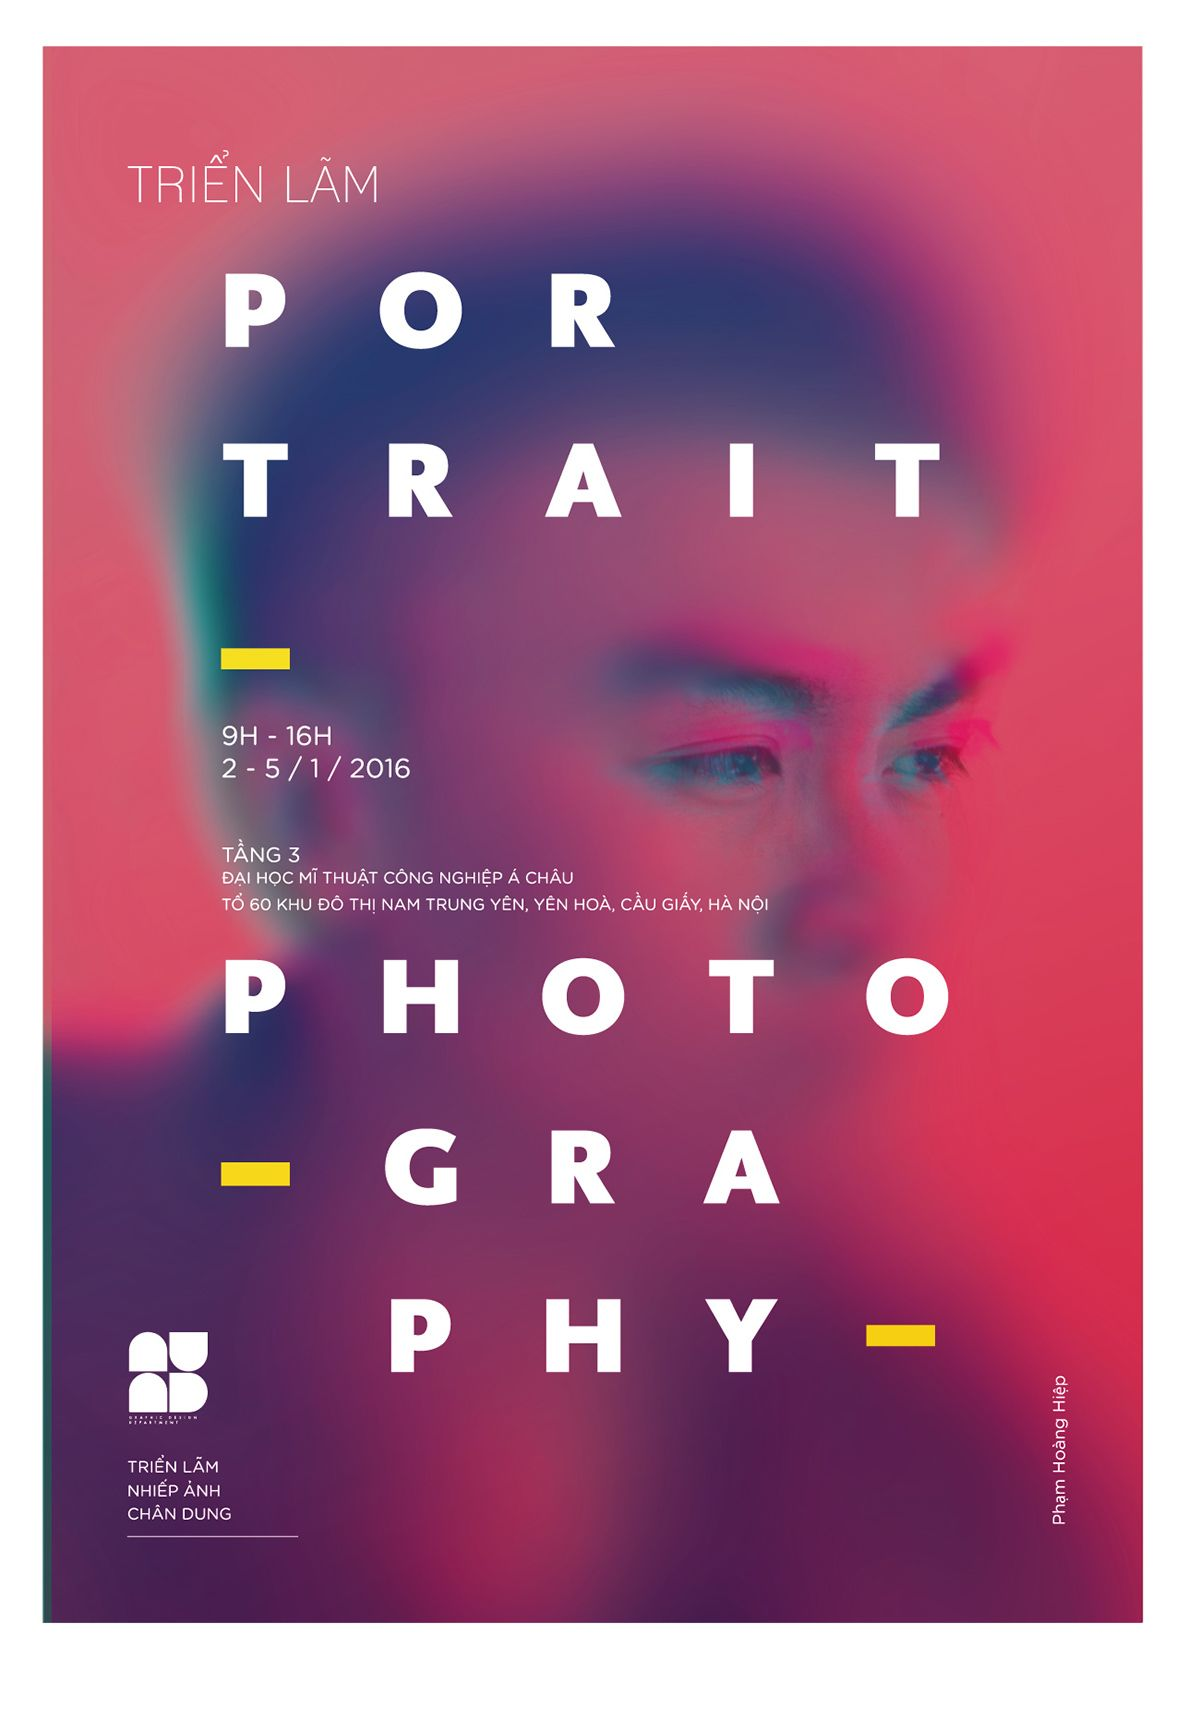 Poster design trends 2015 - Auad Poster Exhibition On Behance More